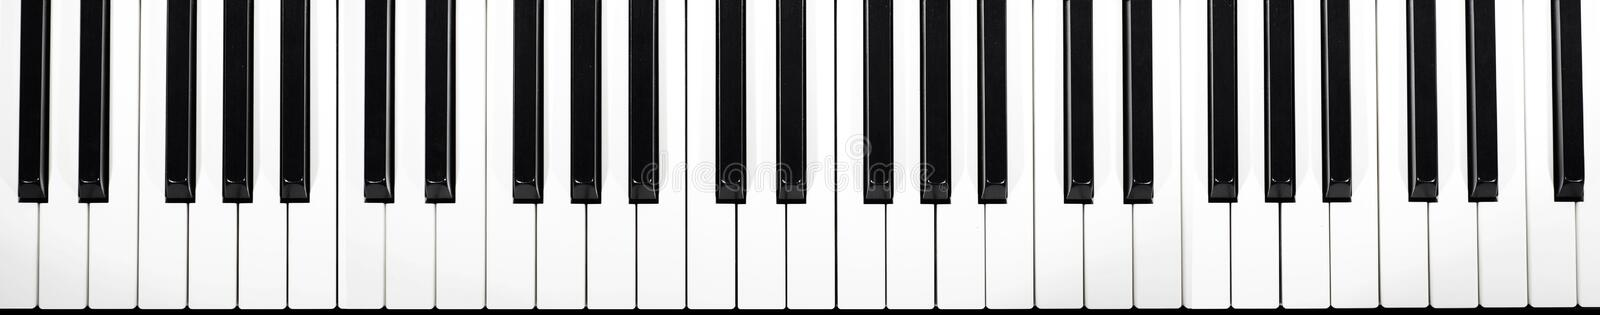 Musical keyboard more than four octaves royalty free stock image